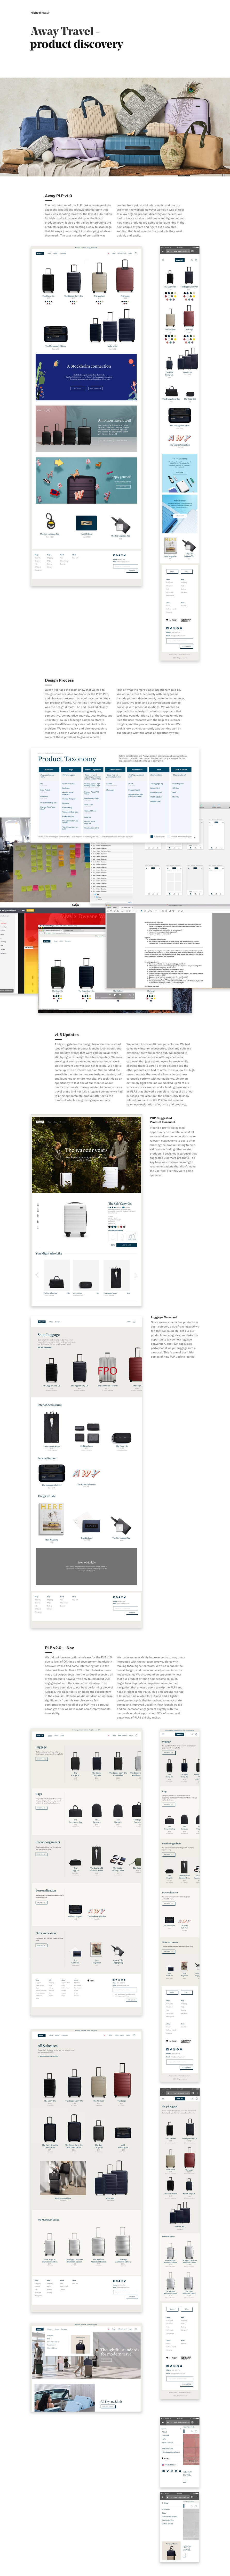 Away Travel - Product Discovery